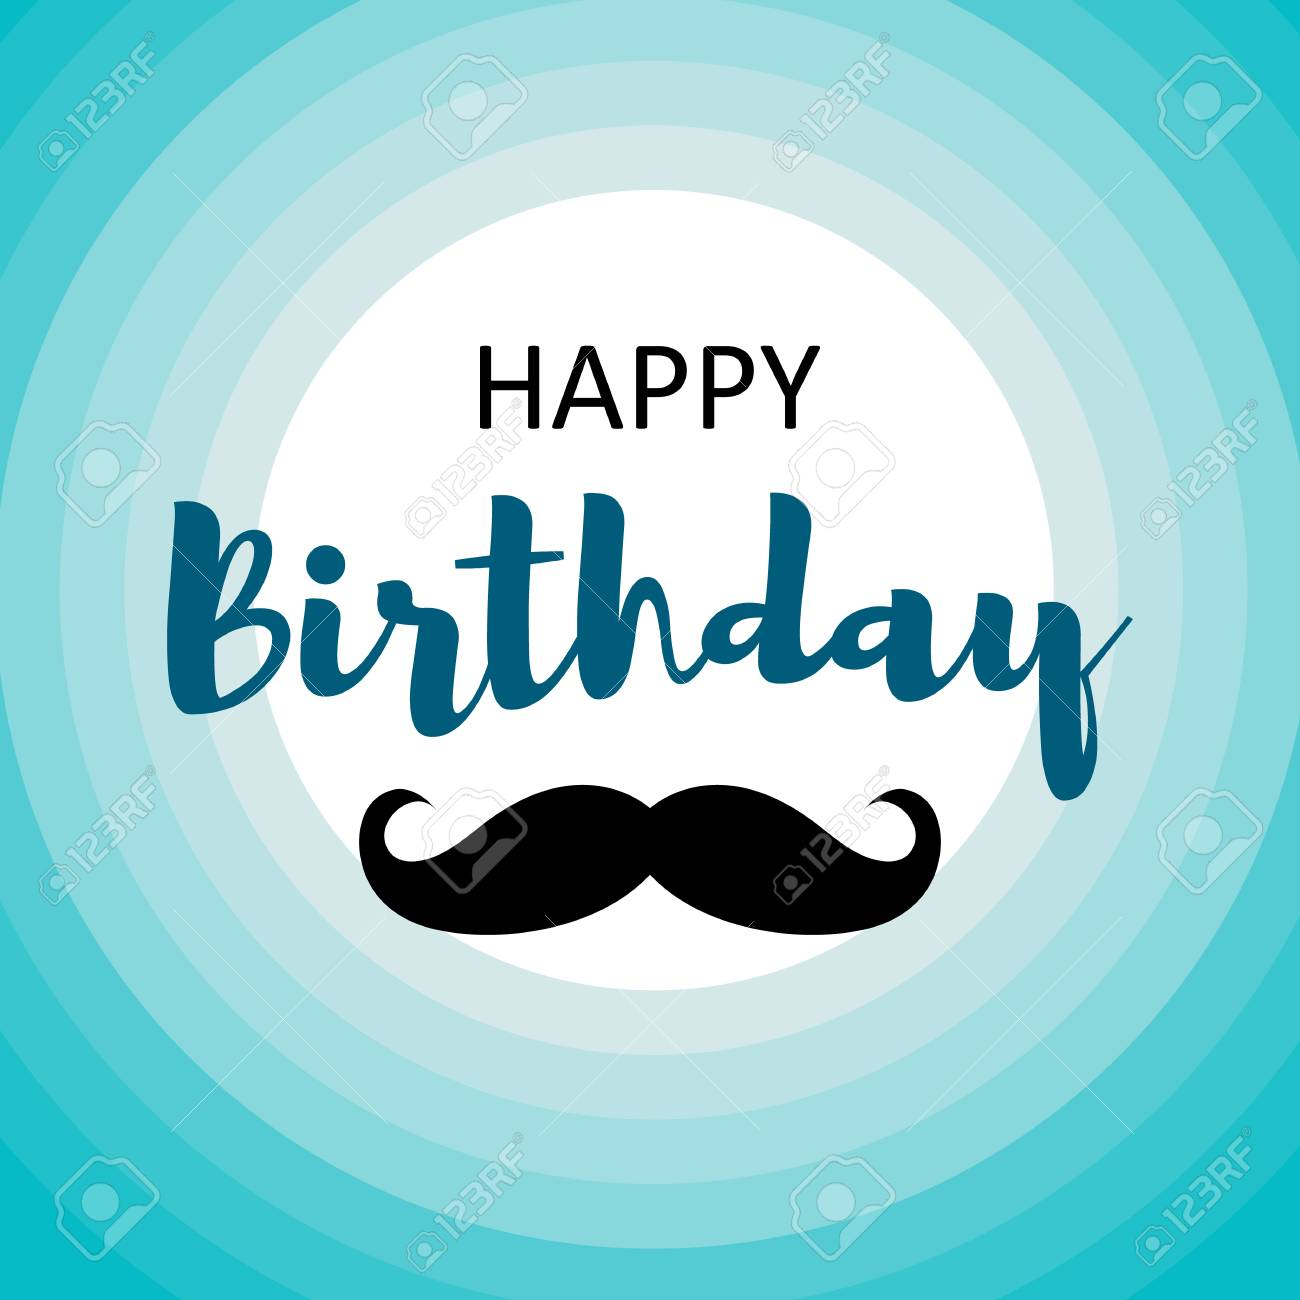 Happy Birthday Card For Men Template Design Royalty Free Cliparts Vectors And Stock Illustration Image 99663003